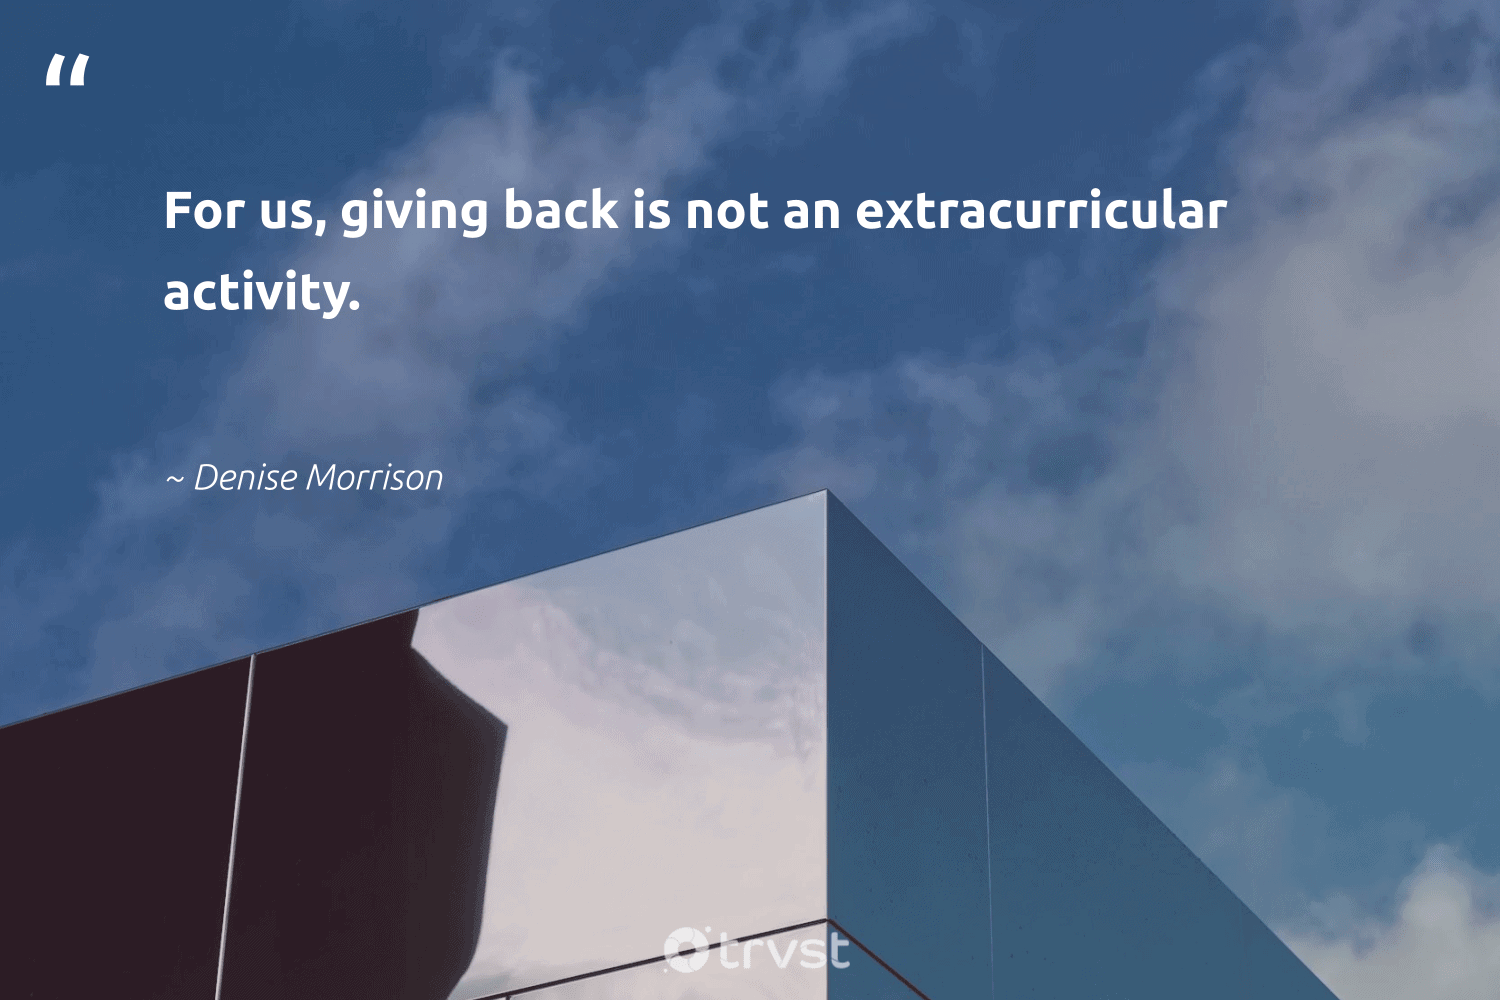 """""""For us, giving back is not an extracurricular activity.""""  - Denise Morrison #trvst #quotes #givingback #giveback #dogood #changemakers #itscooltobekind #ecoconscious #socialgood #giveforthefuture #togetherwecan #impact"""